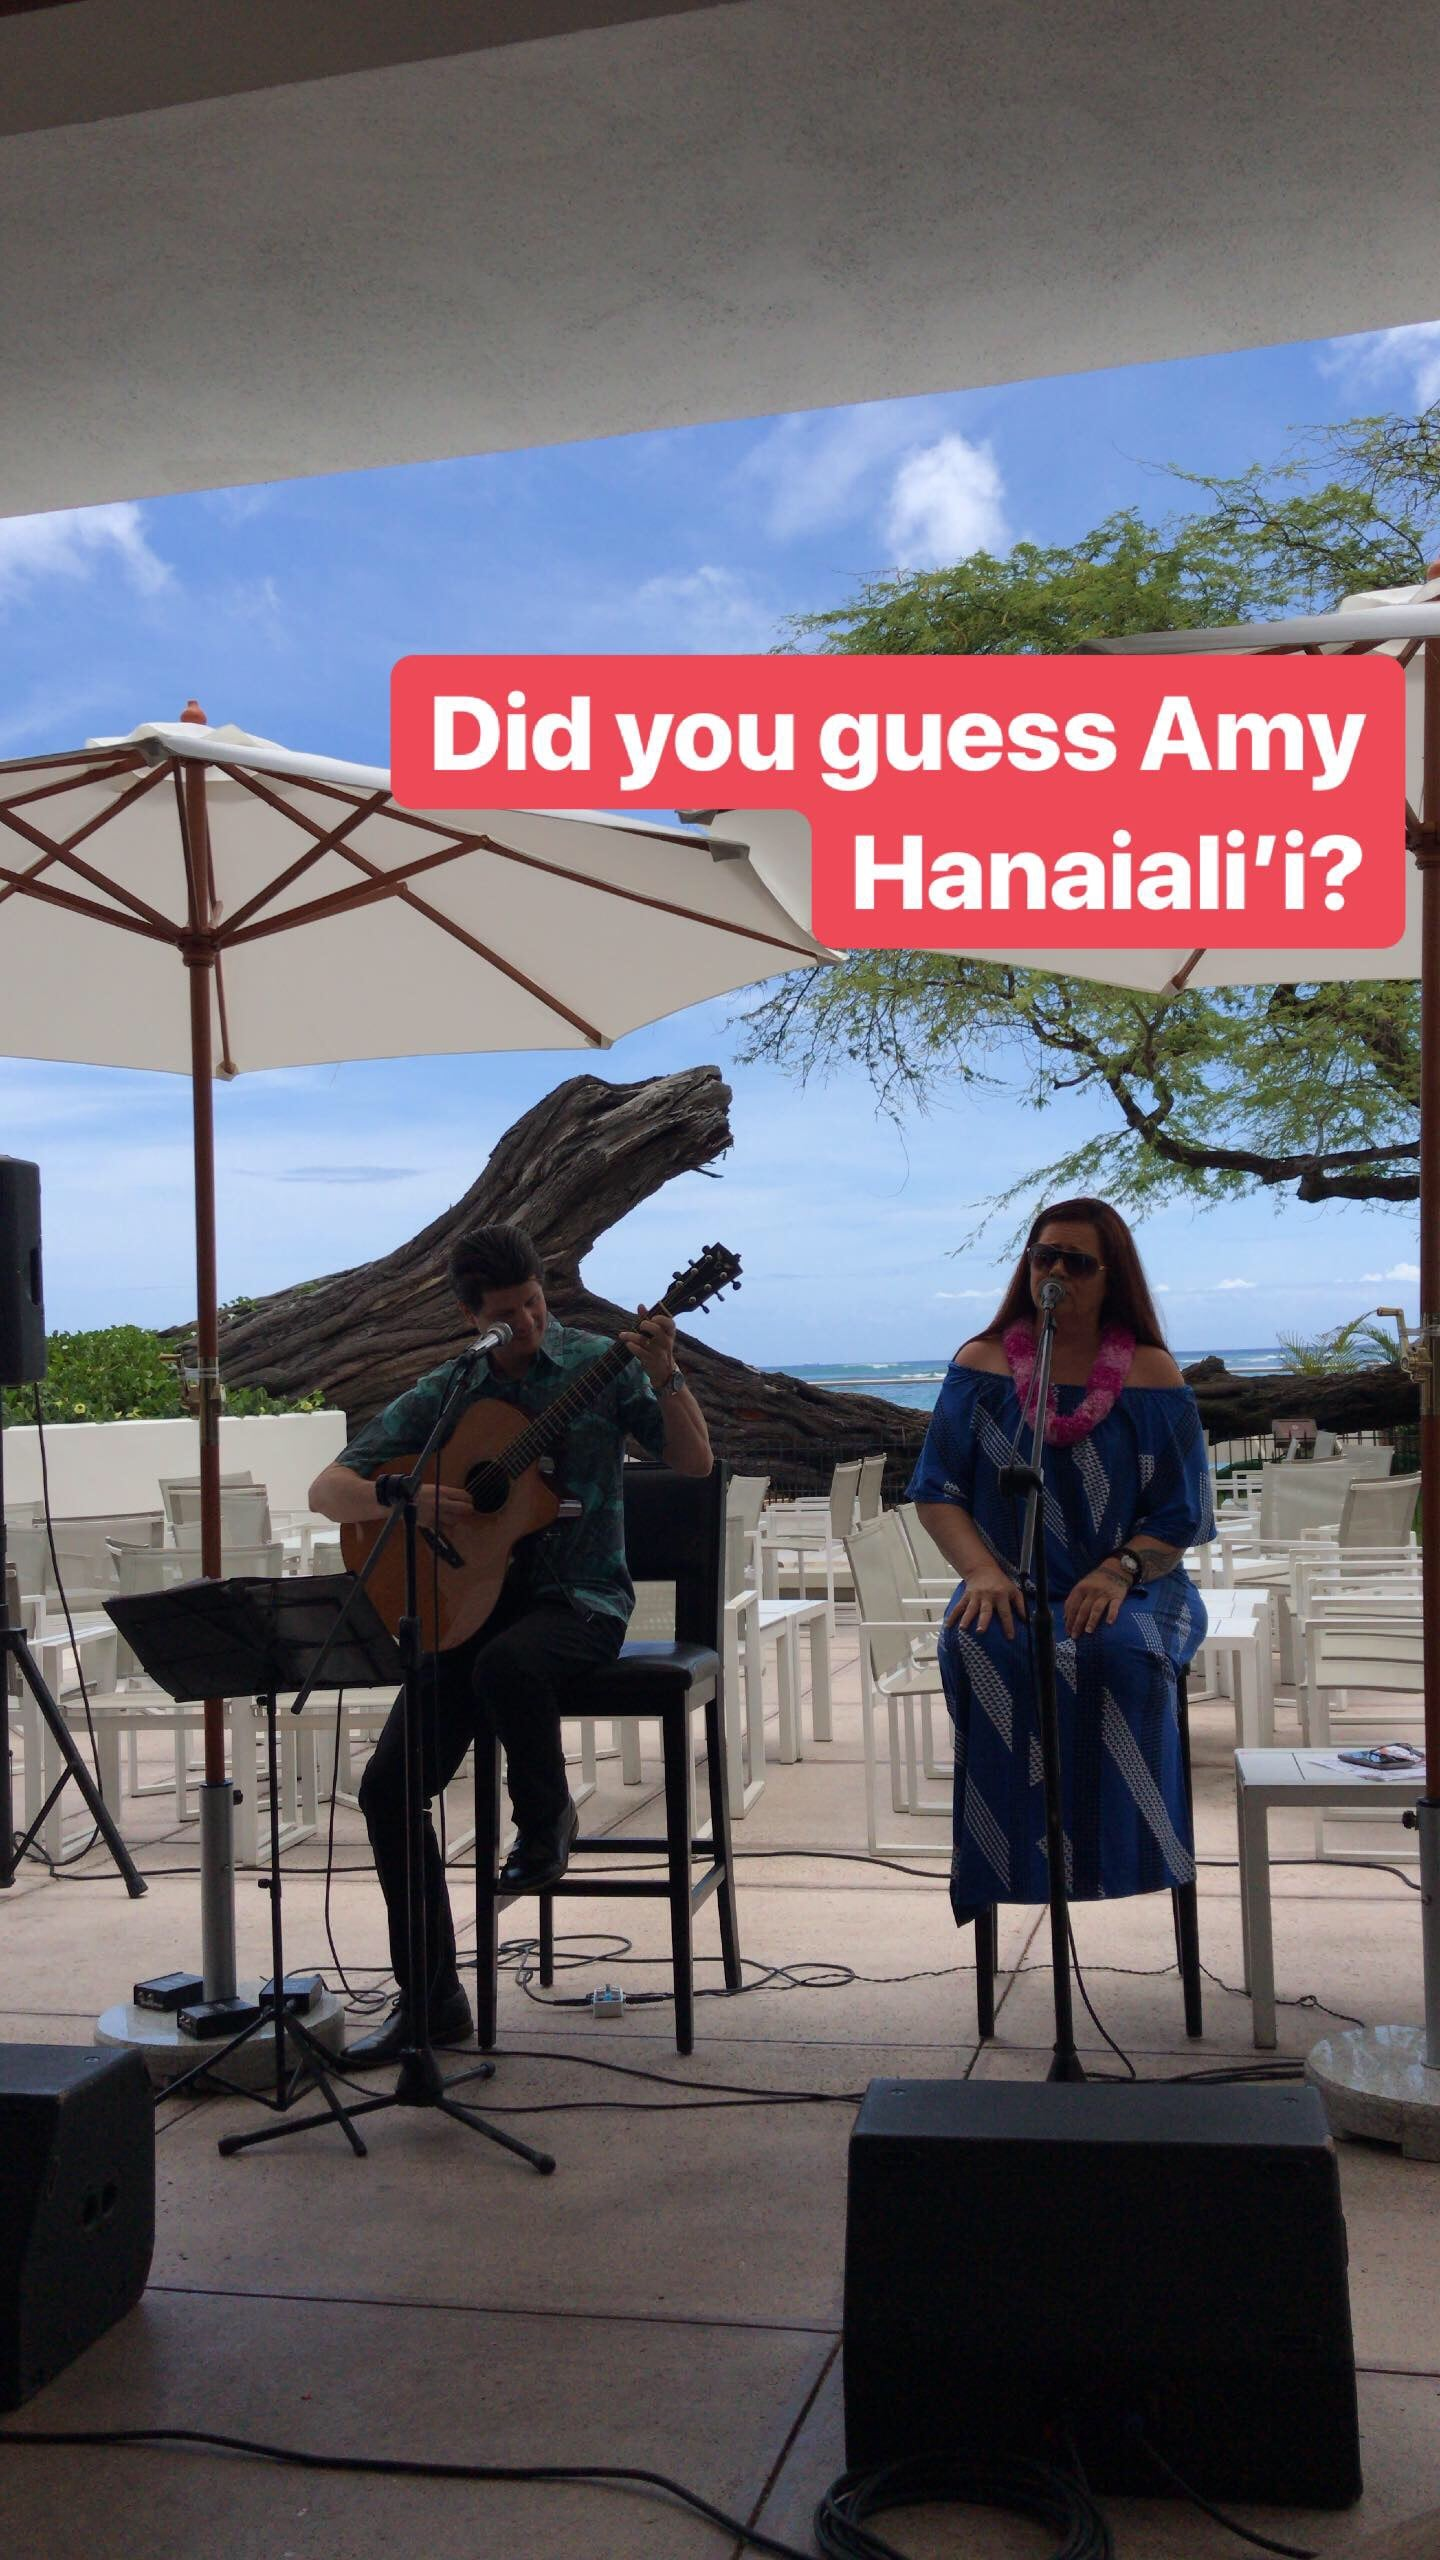 Eating At Halekulani's Restaurant House Without A Key, GRAMMY-nominee Amy Hānaialiʻi Gilliom performing with Jeff Peterson in Hawaii